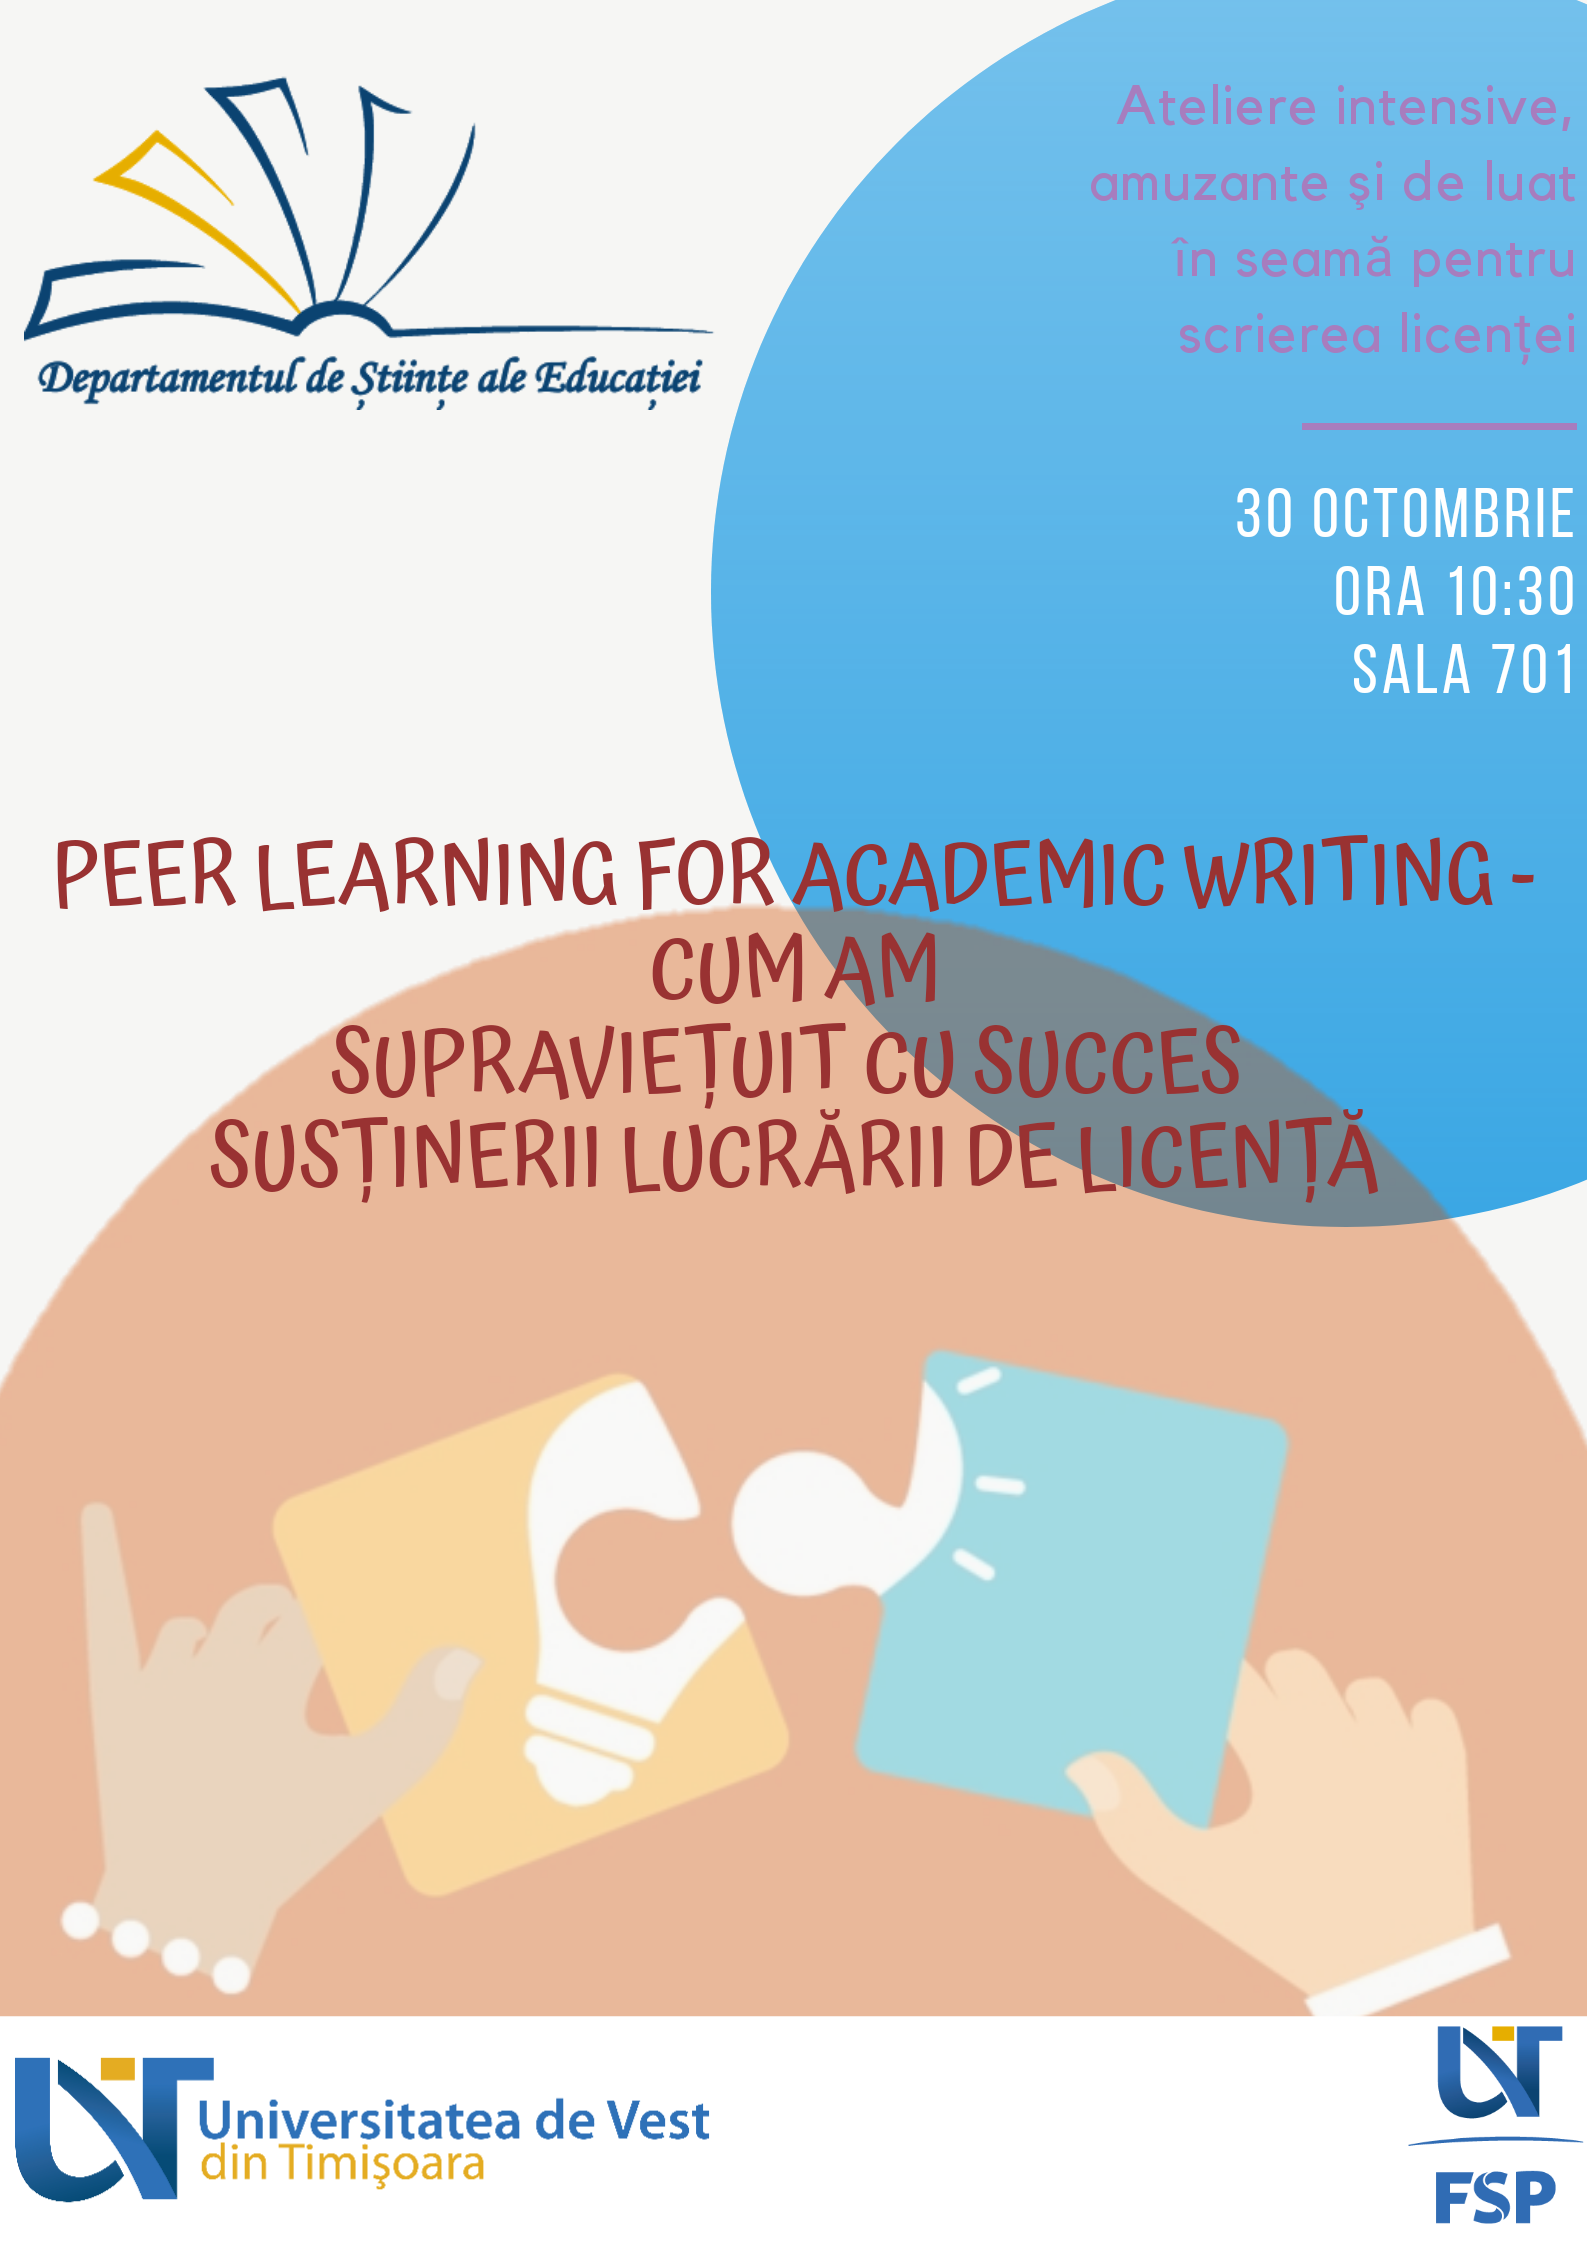 Peer Learning for Academic Writing